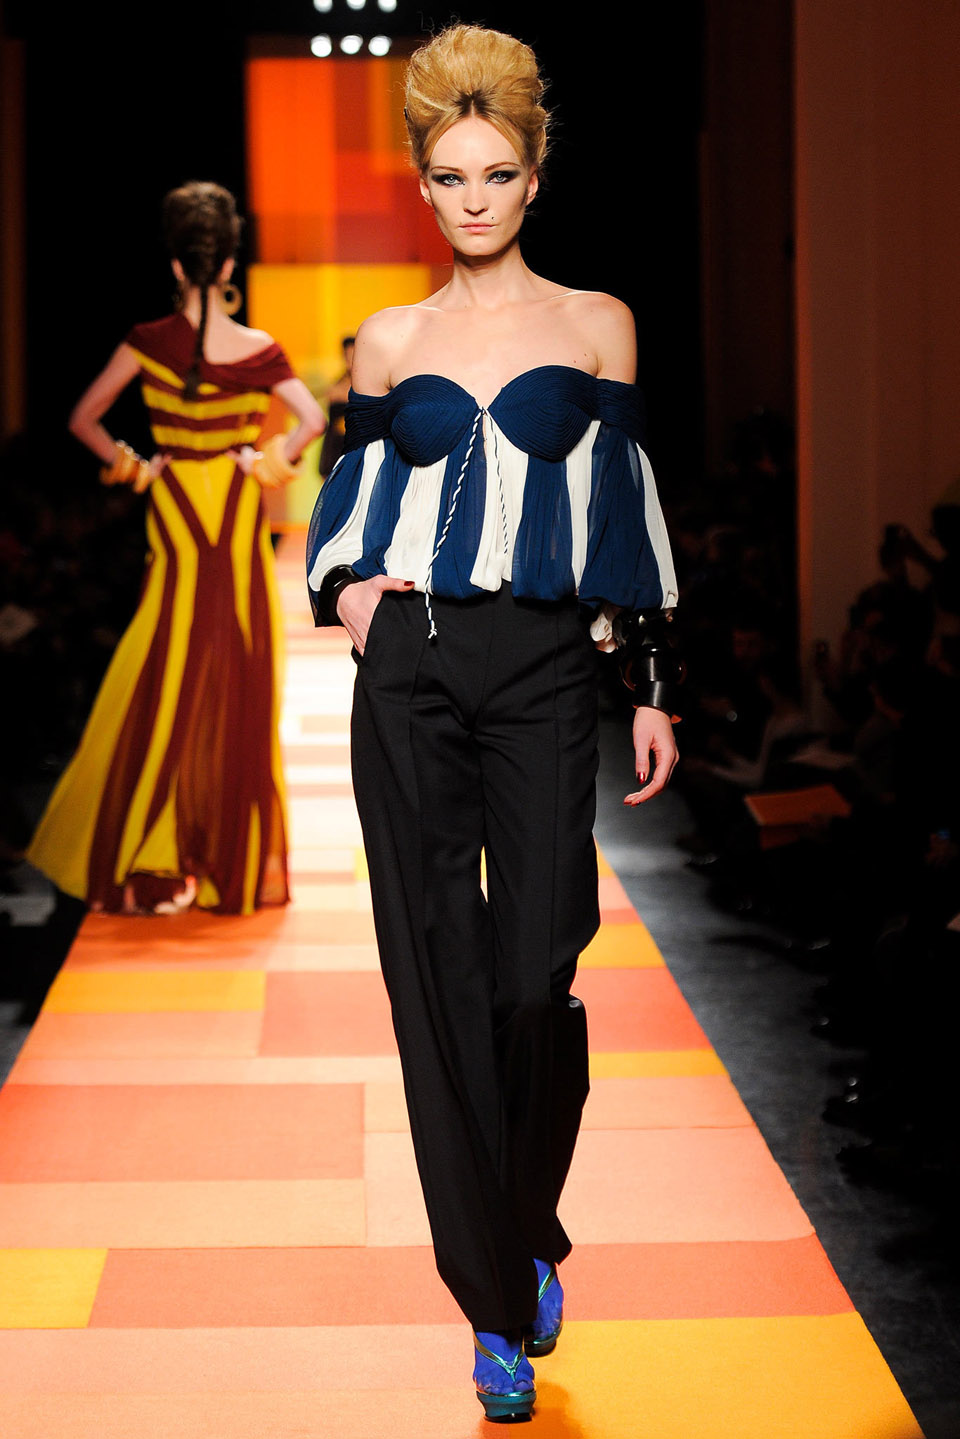 Jean Paul Gaultier Spring - Summer 2013, Haute Couture collection.4